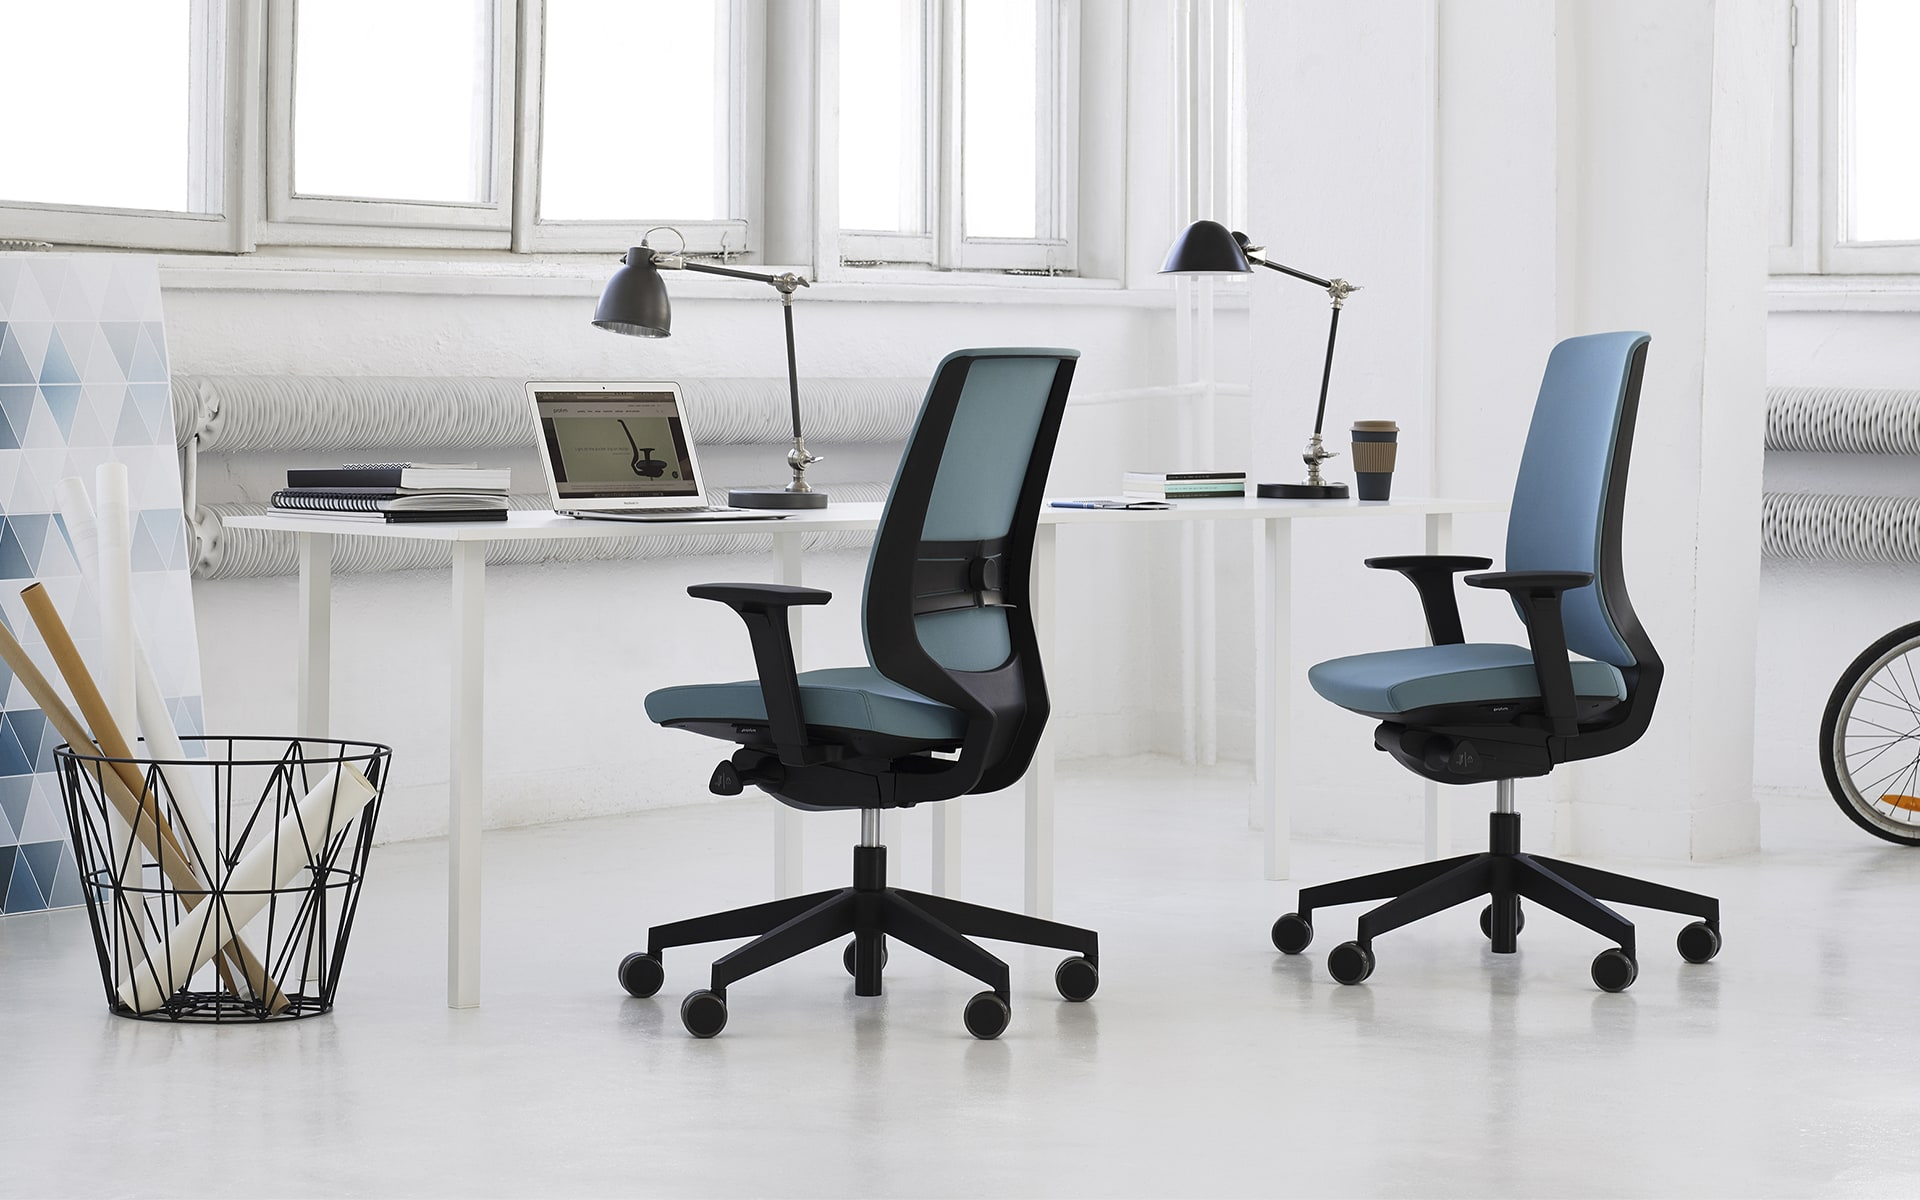 Profim LightUp office chairs by ITO Design with blue upholstery at minimalist desk